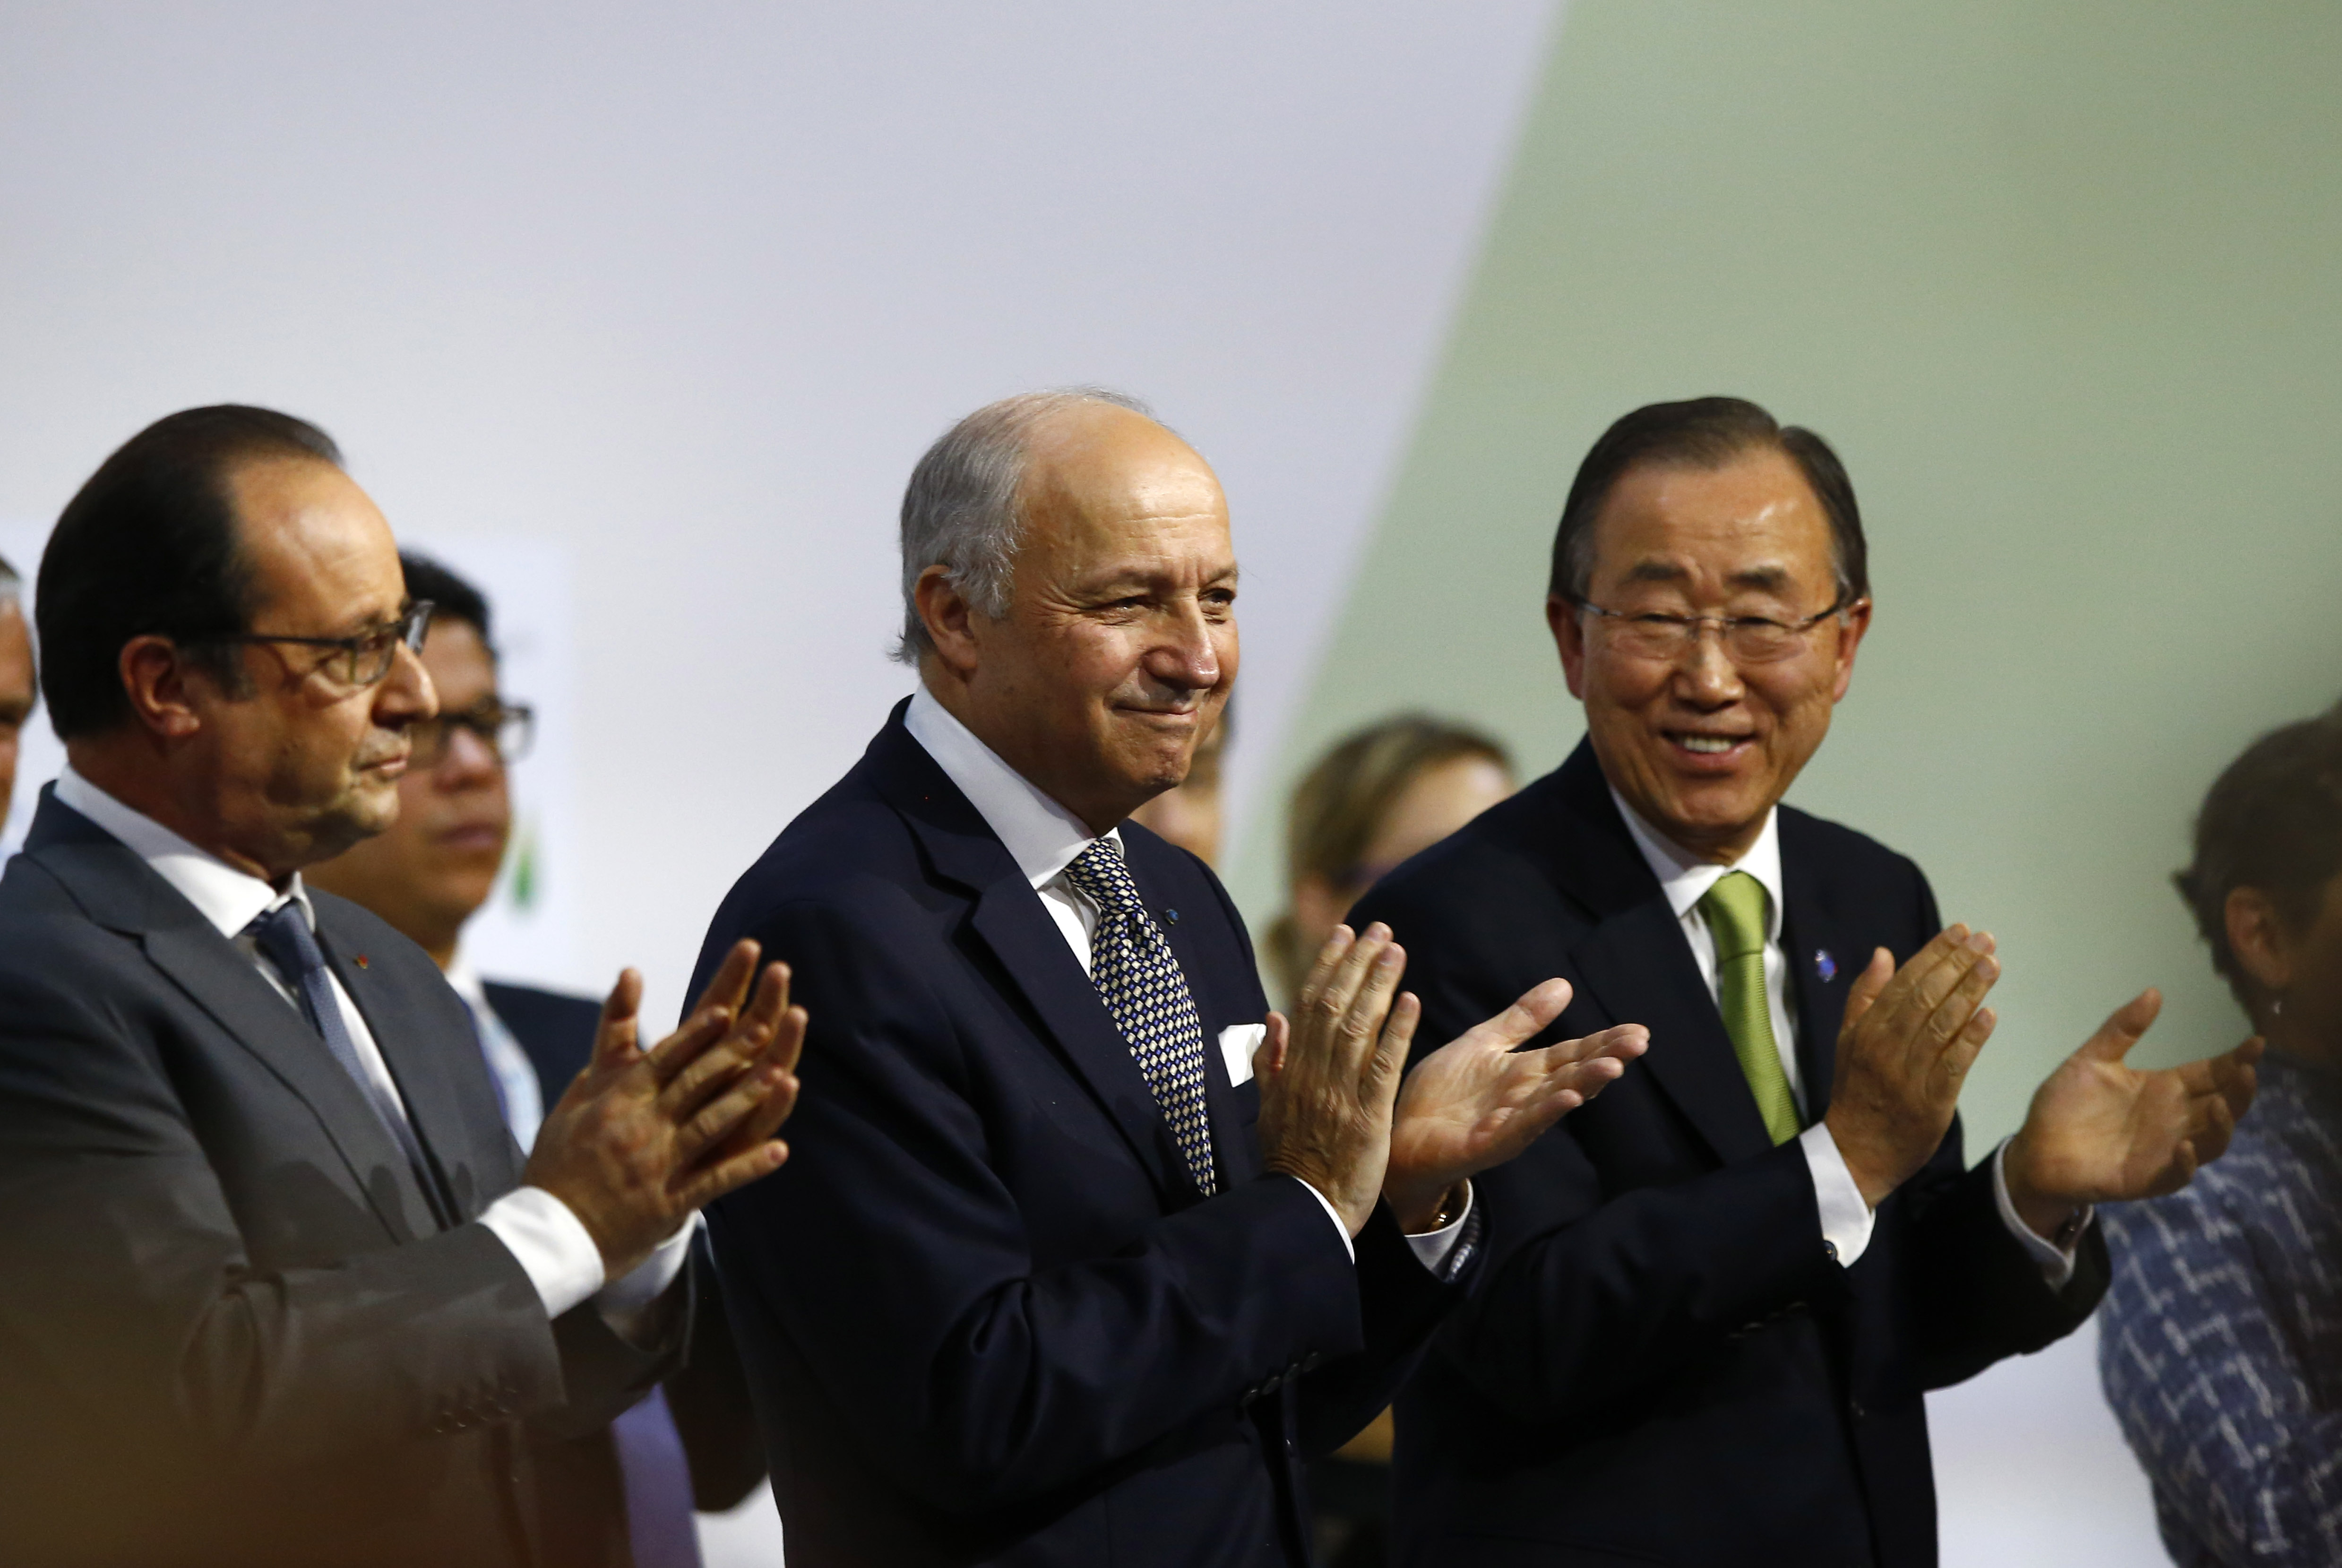 Francois Hollande, Laurent Fabius and Ban Ki-moon applaud at the COP21, the United Nations Climate Change Conference, in Le Bourget, north of Paris, on Dec.12, 2015.